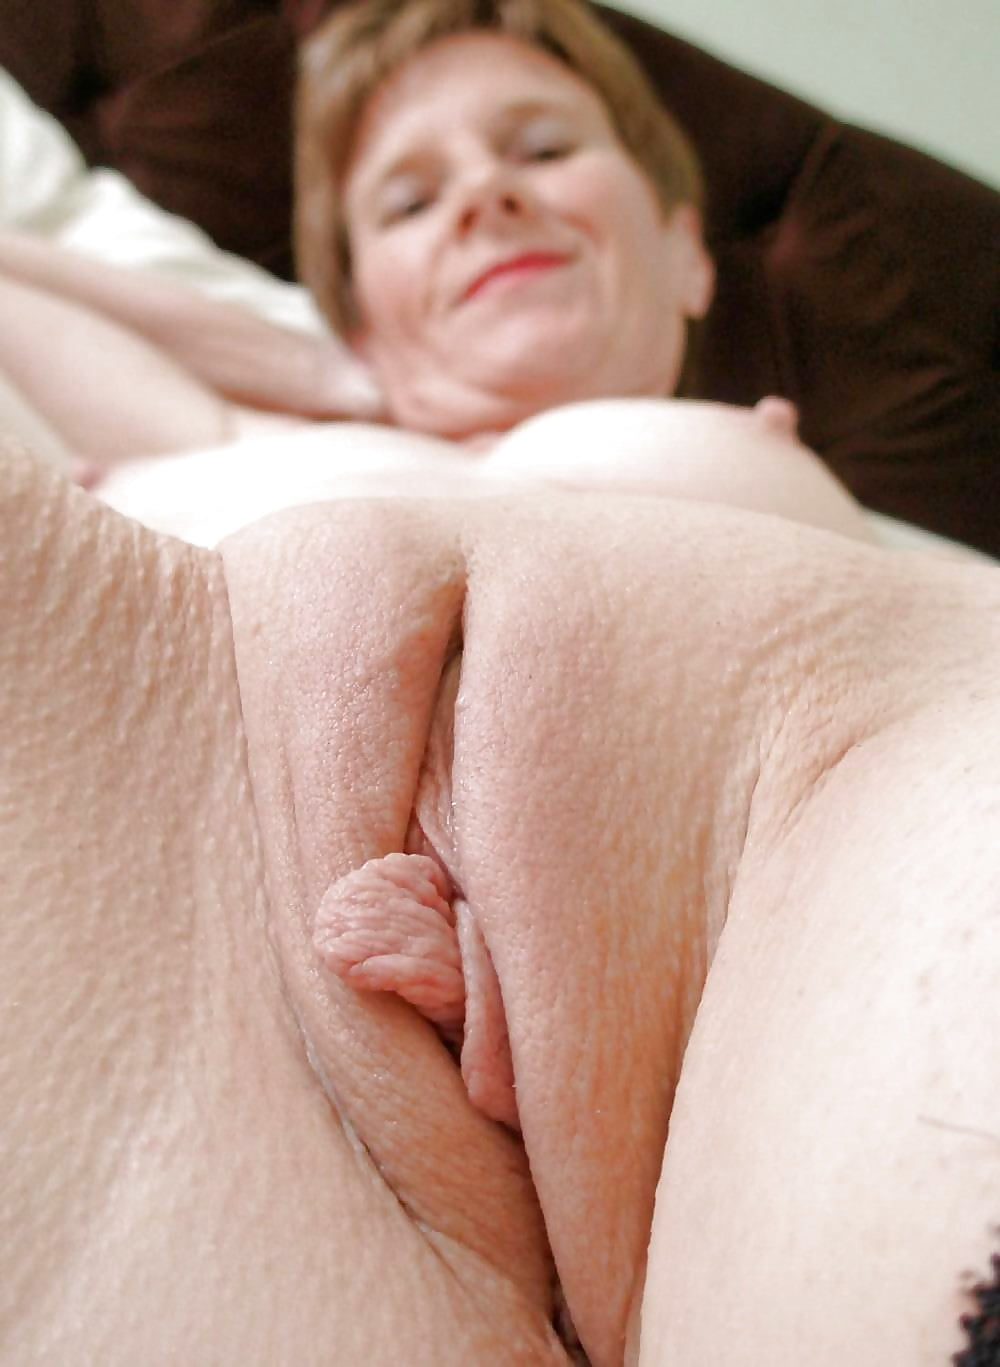 old-grannys-shaved-pussy-hot-naked-greek-girls